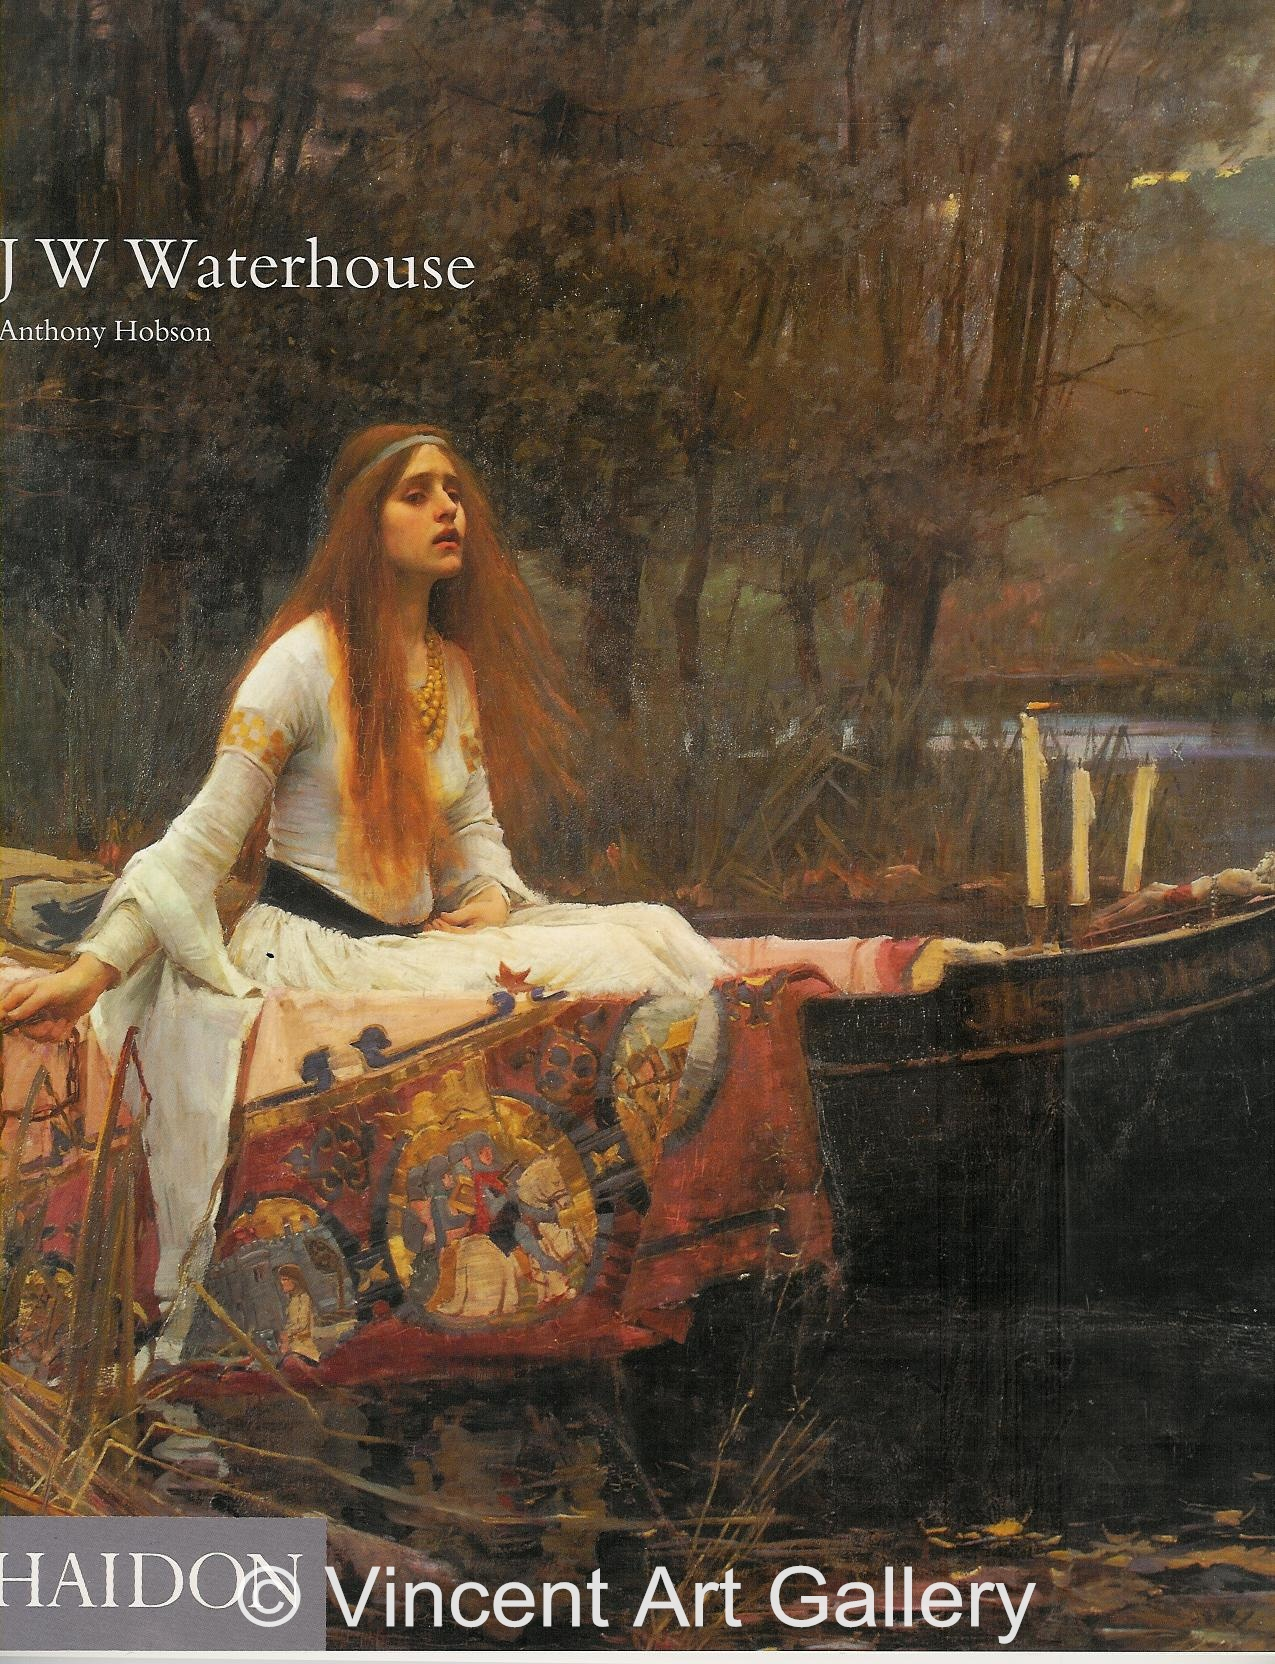 A1184, WATERHOUSE, The Lady of Shalot, use these colors